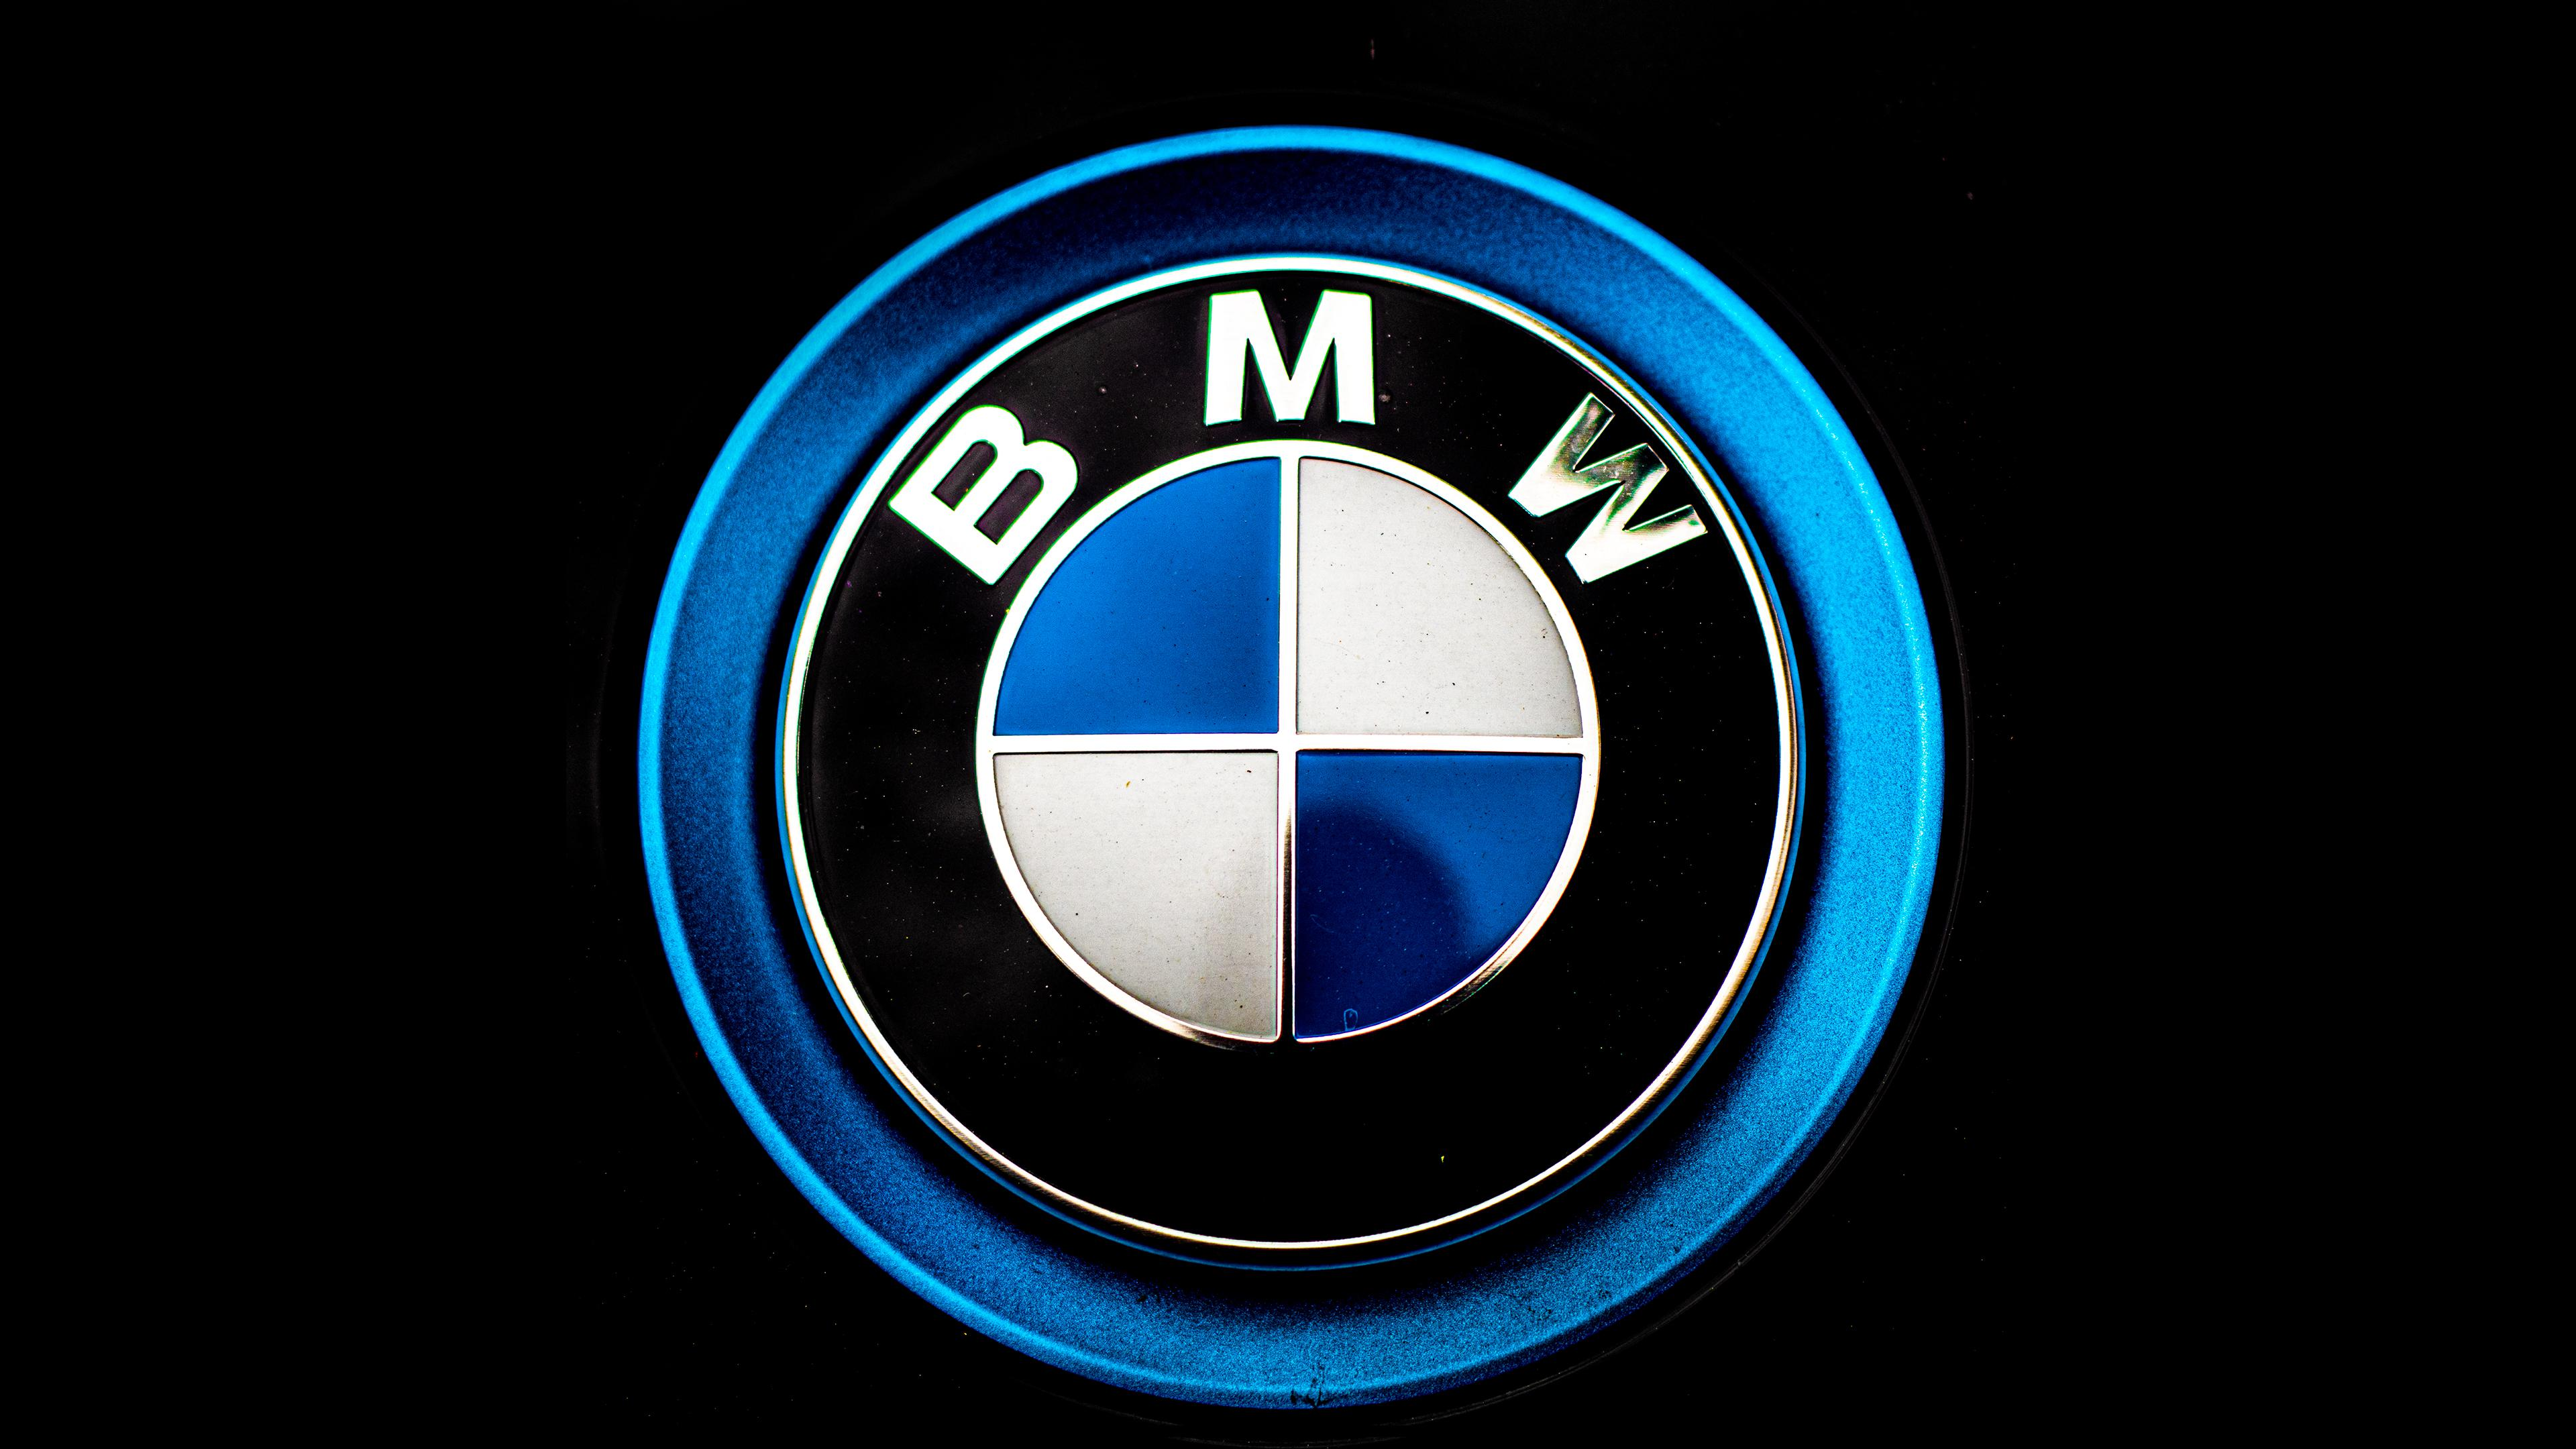 Bmw Logo Full Hd 3840x2160 Download Hd Wallpaper Wallpapertip